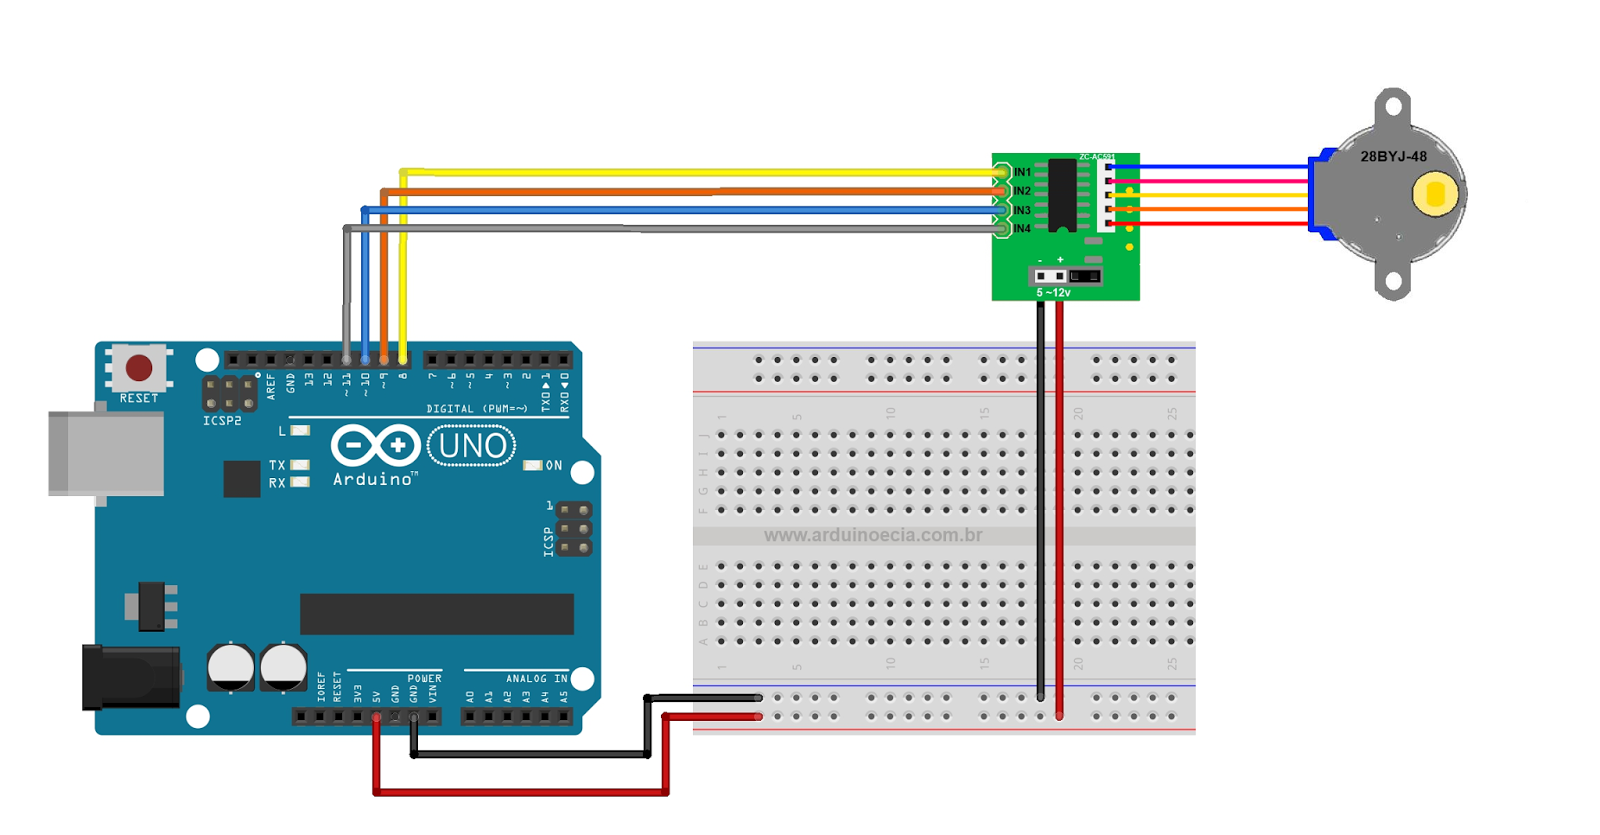 attempted fun with engineering arduino library for 28byj48 stepper rh engyfun blogspot com wiring.h arduino library Arduino Relay Wiring Diagram